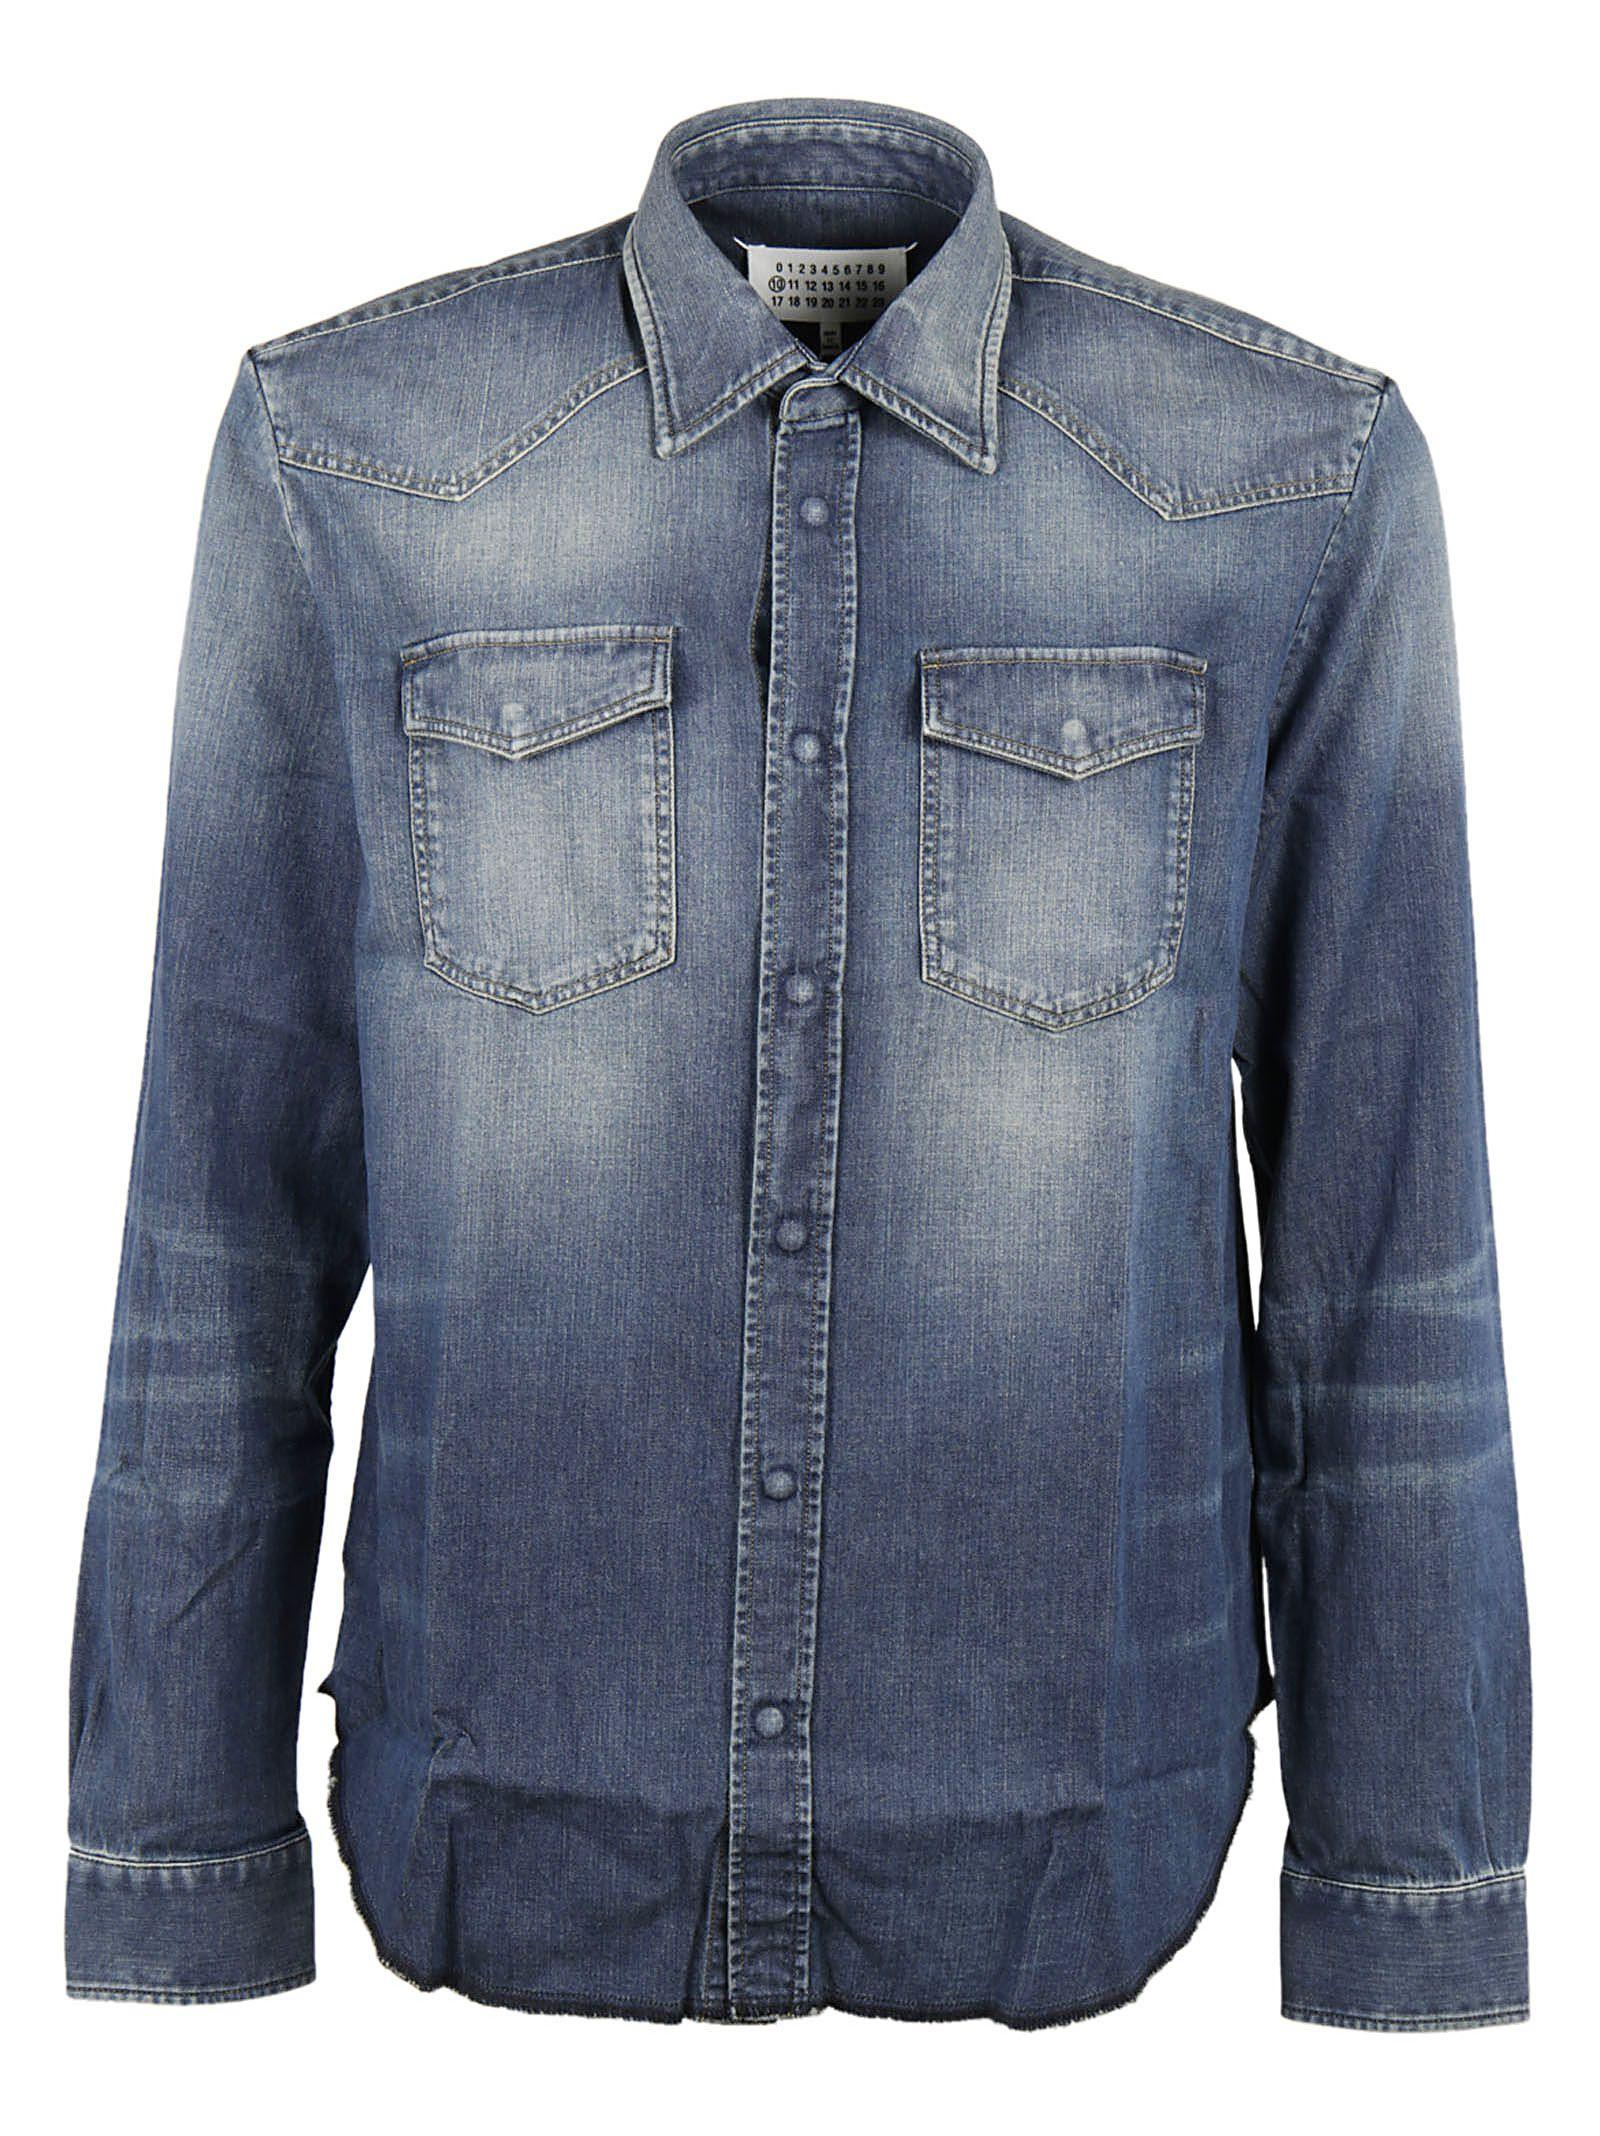 Maison Margiela Straight Fit Denim Shirt In Blue